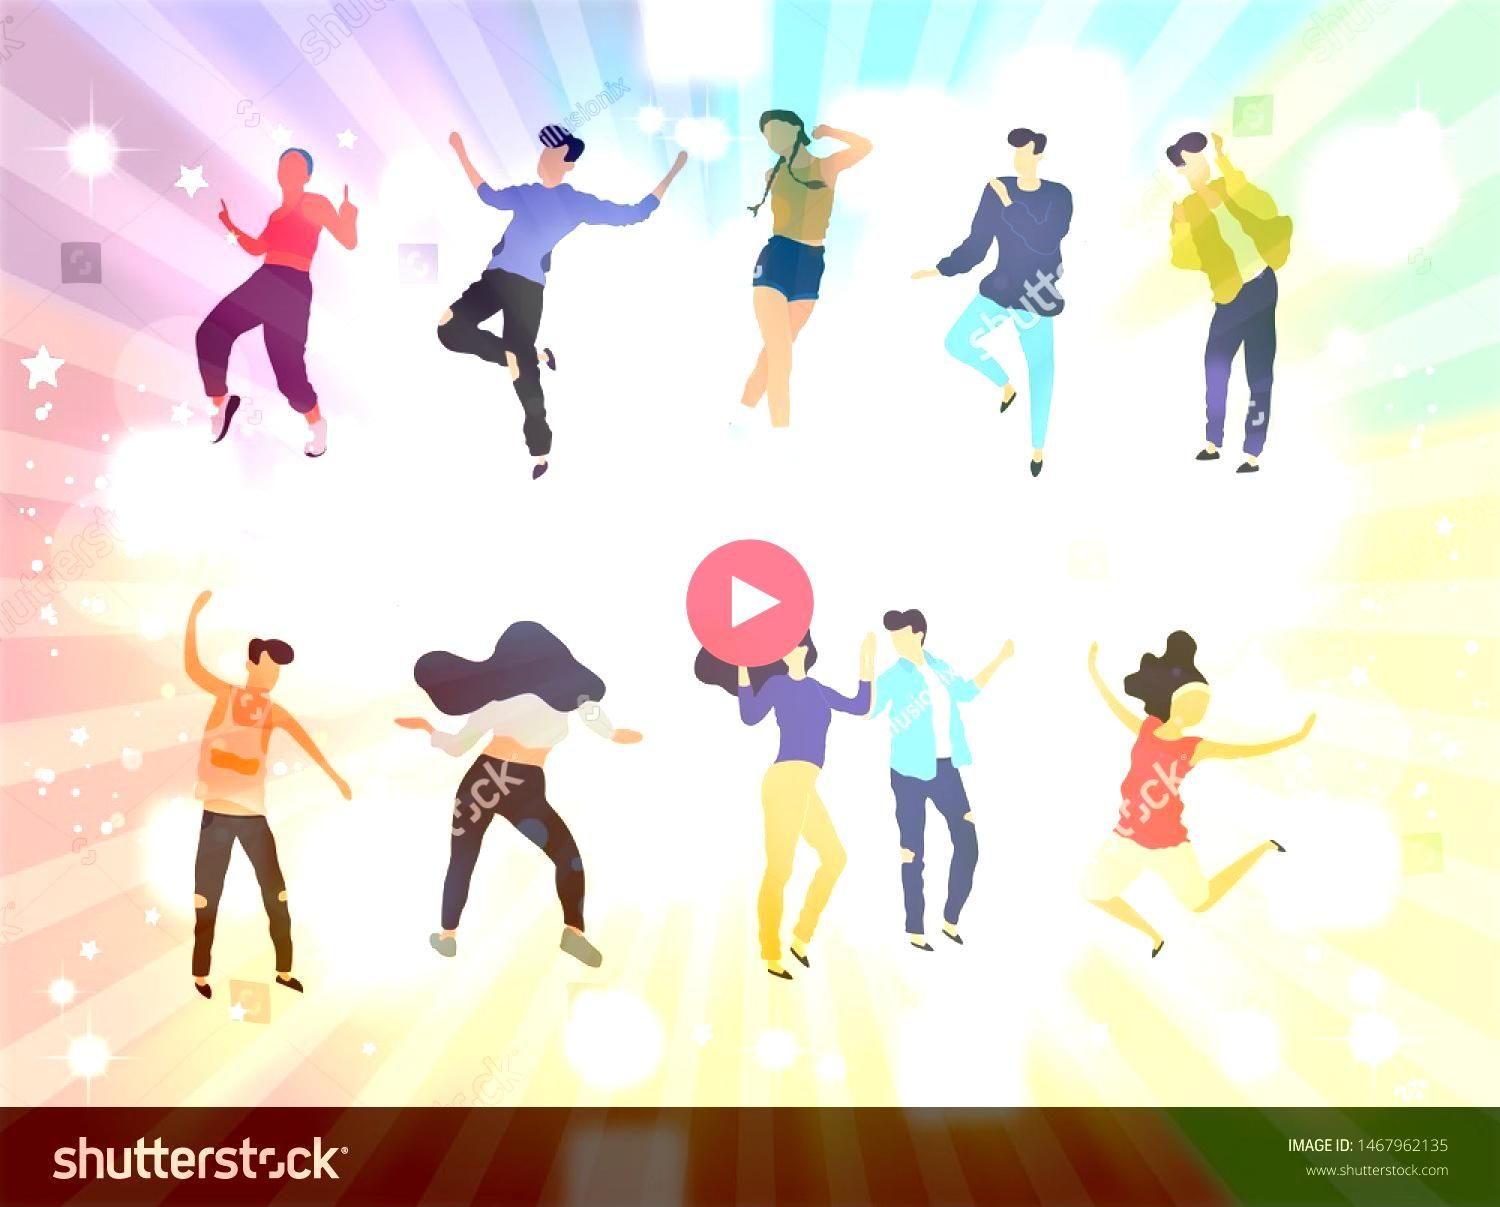 of young people dancing at club Big set of characters having fun at party Flat colorful vector illustration  Vector Crowd of young people dancing at club Big set of chara...